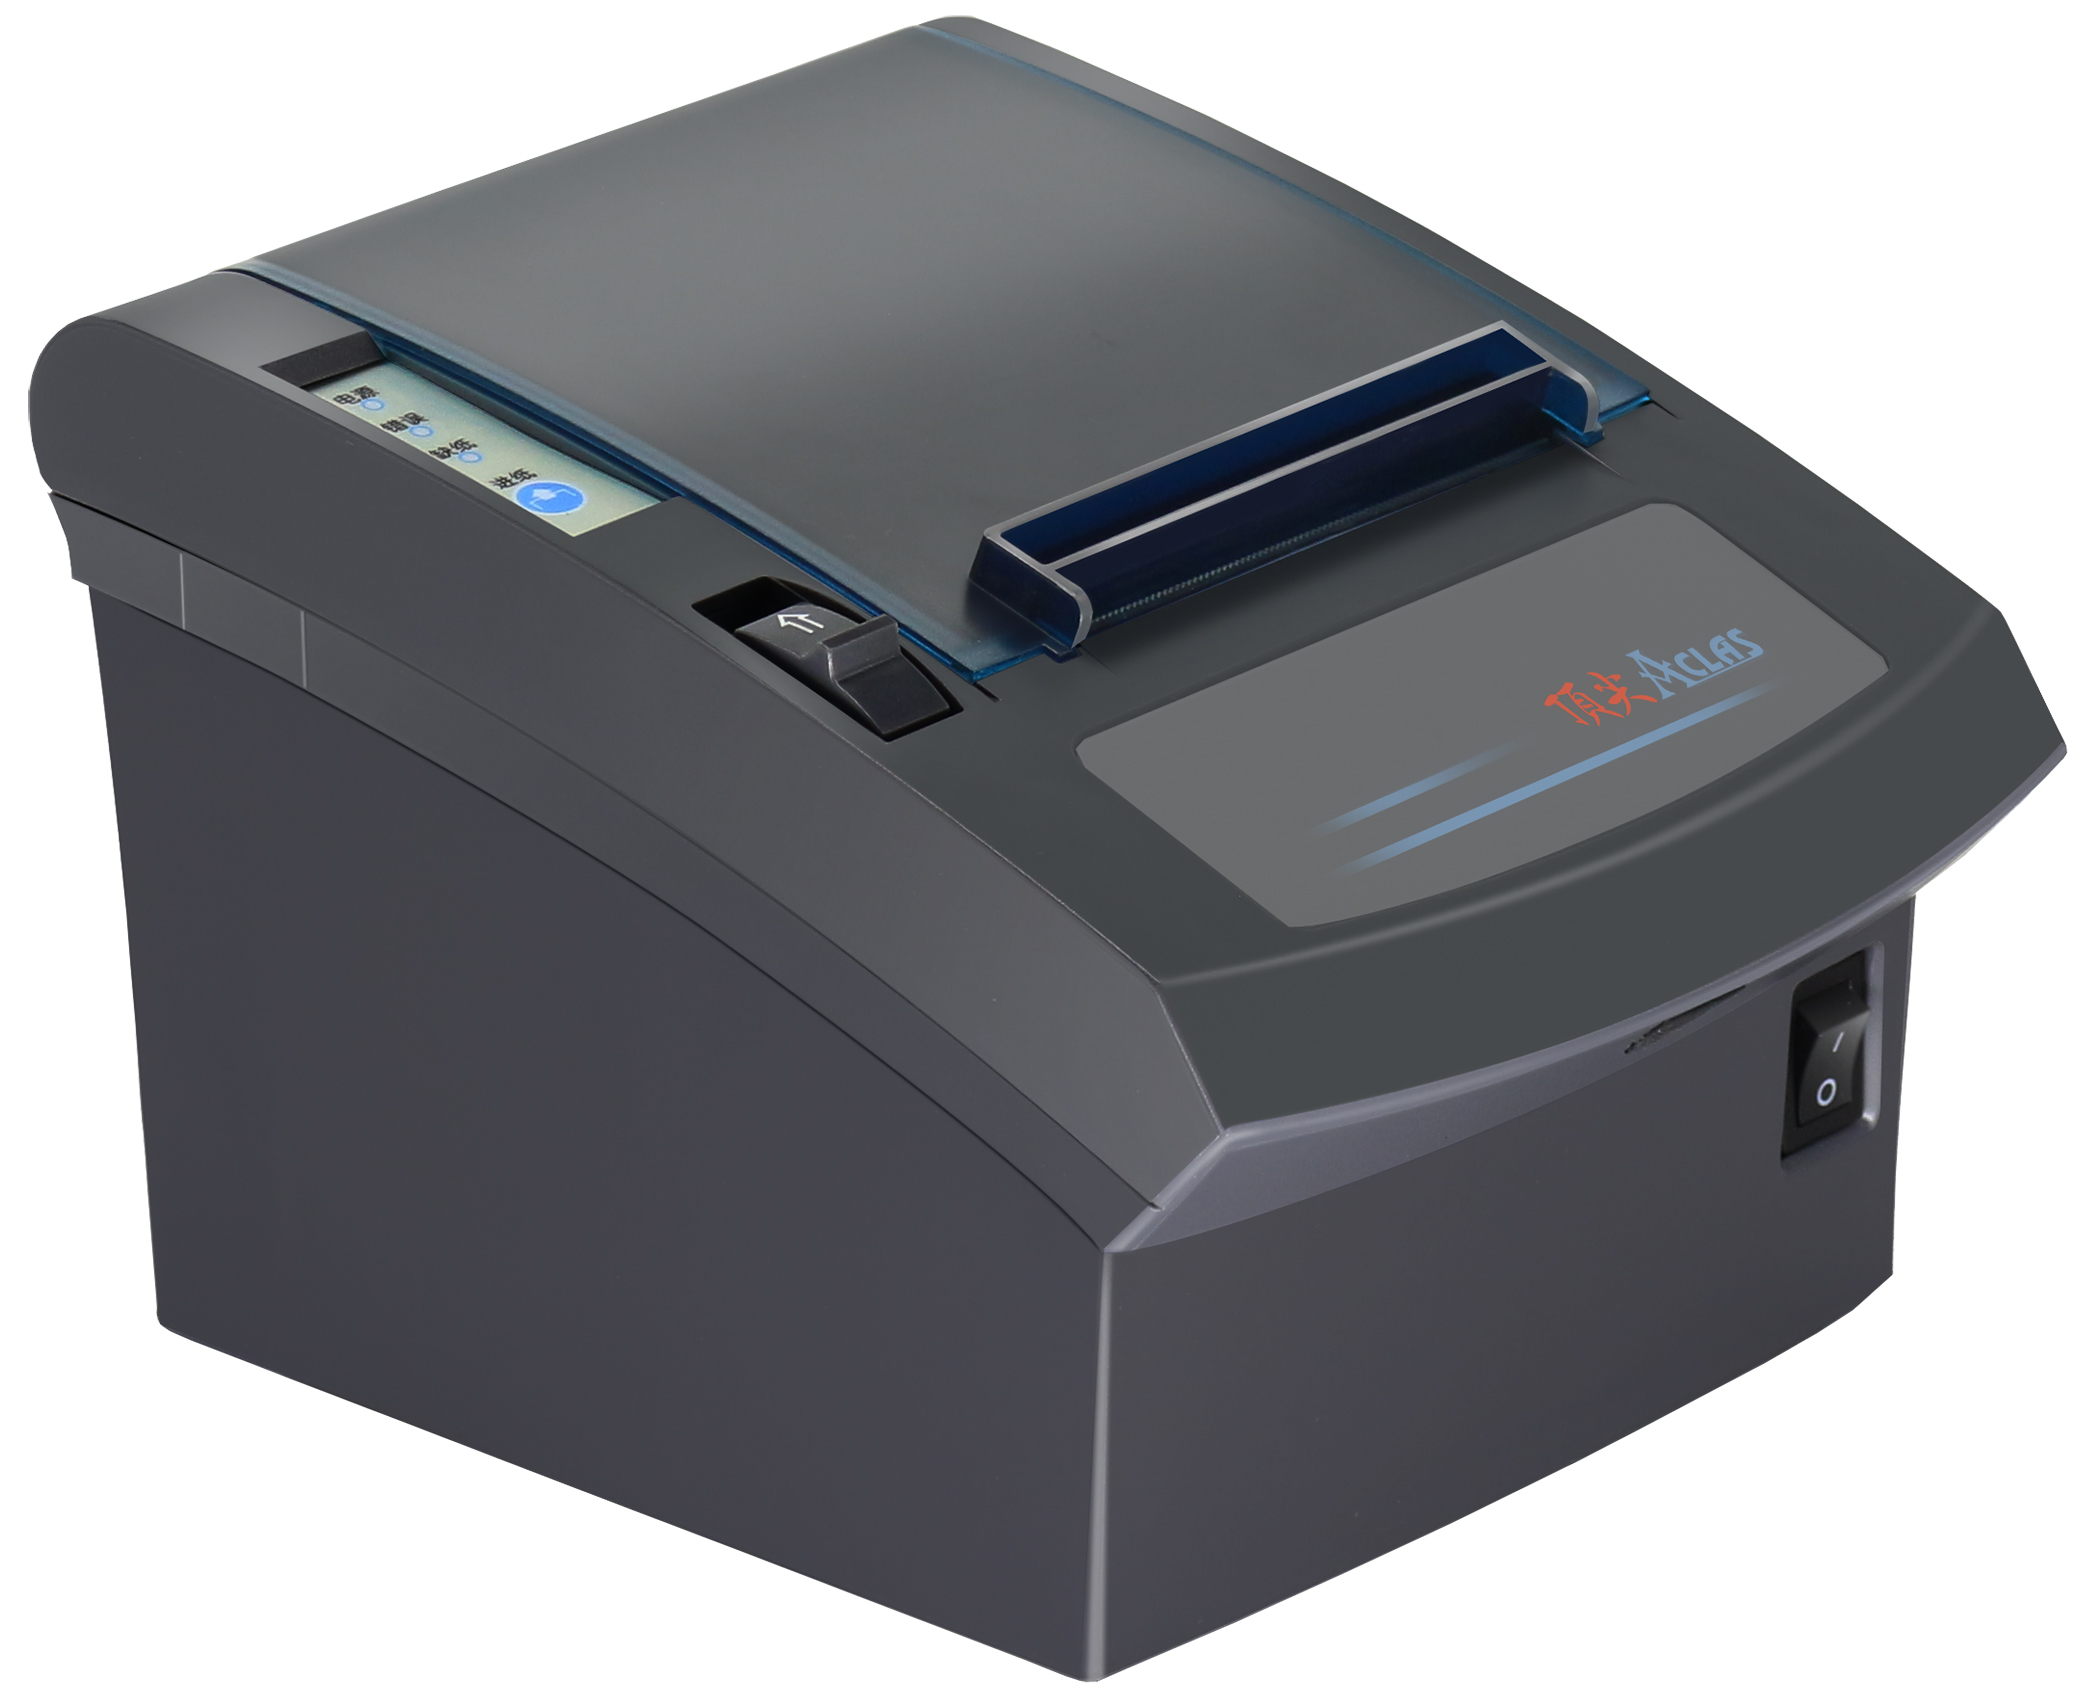 Aclas Pp7x Printer Driver Download